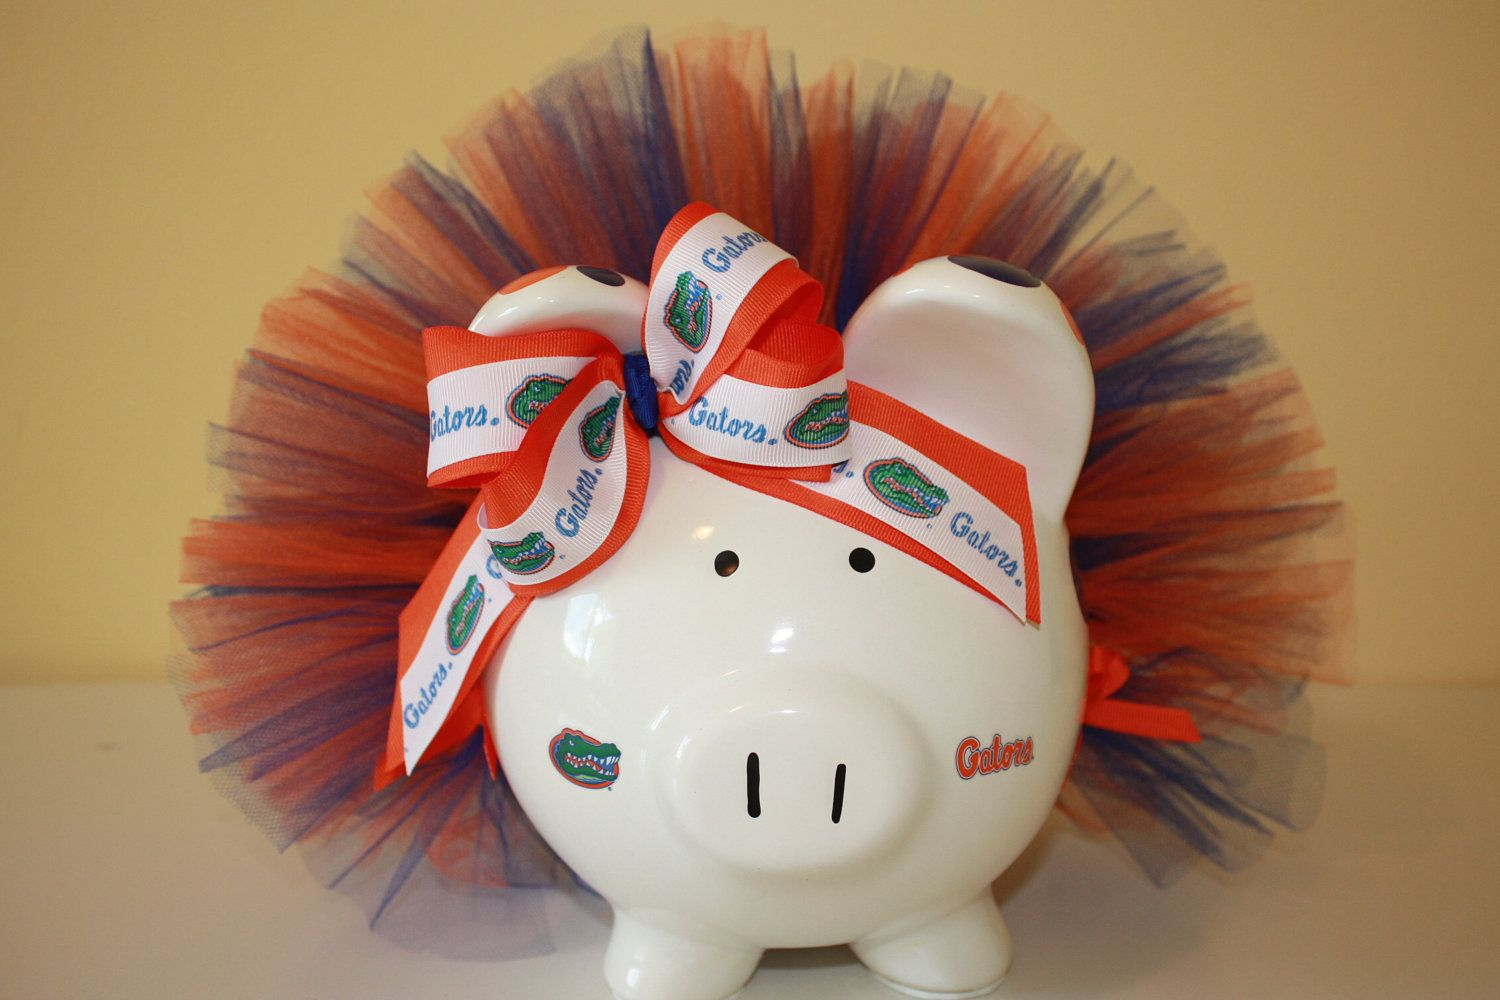 Florida Gators Large Polka Dot Piggy Bank With Tutu So Cute